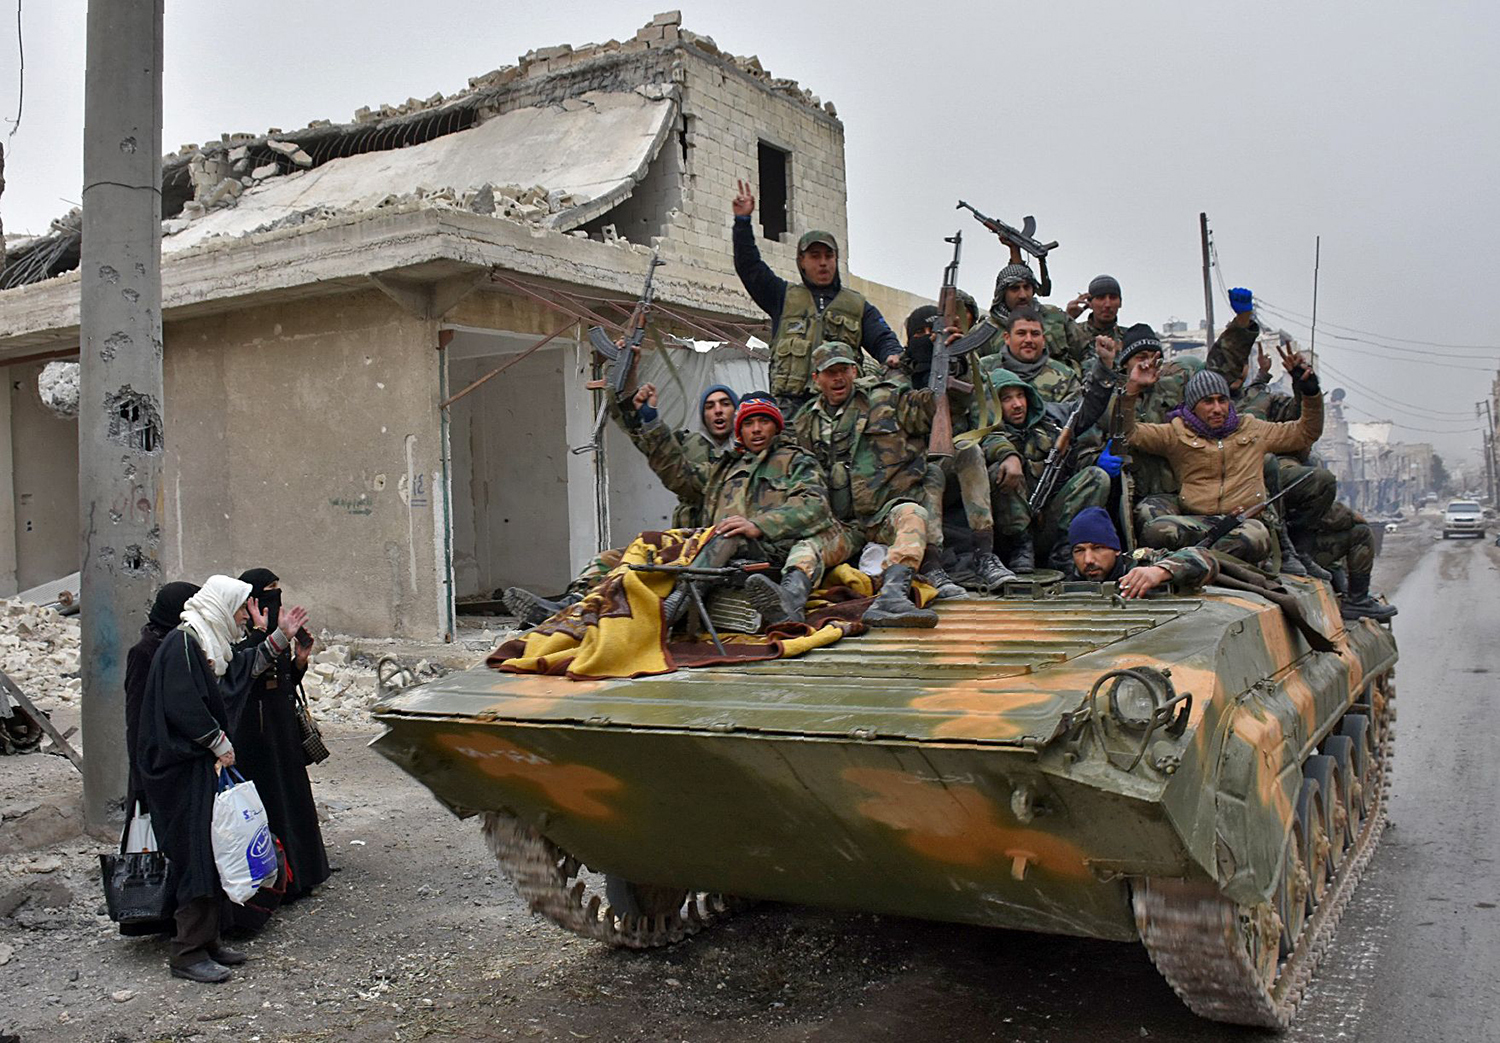 TOPSHOT - Syrian pro-government forces sit on a military vehicle driving past residents fleeing the eastern part of Aleppo and gathering in Masaken Hanano, a former rebel-held district which was retaken by the regime forces last week, on November 30, 2016. More than 50,000 Syrians have joined a growing exodus of terrified civilians from the besieged rebel-held east of Aleppo, the Syrian Observatory for Human Rights monitor said, as the UN Security Council was set for emergency talks on fighting in the city. Regime forces and allied fighters now fully control the city's northeast and pressed their offensive on November 30 on Aleppo's southeastern edges, advancing in the Sheikh Saeed district, according to state news agency SANA. / AFP PHOTO / George OURFALIAN / TT / kod 444